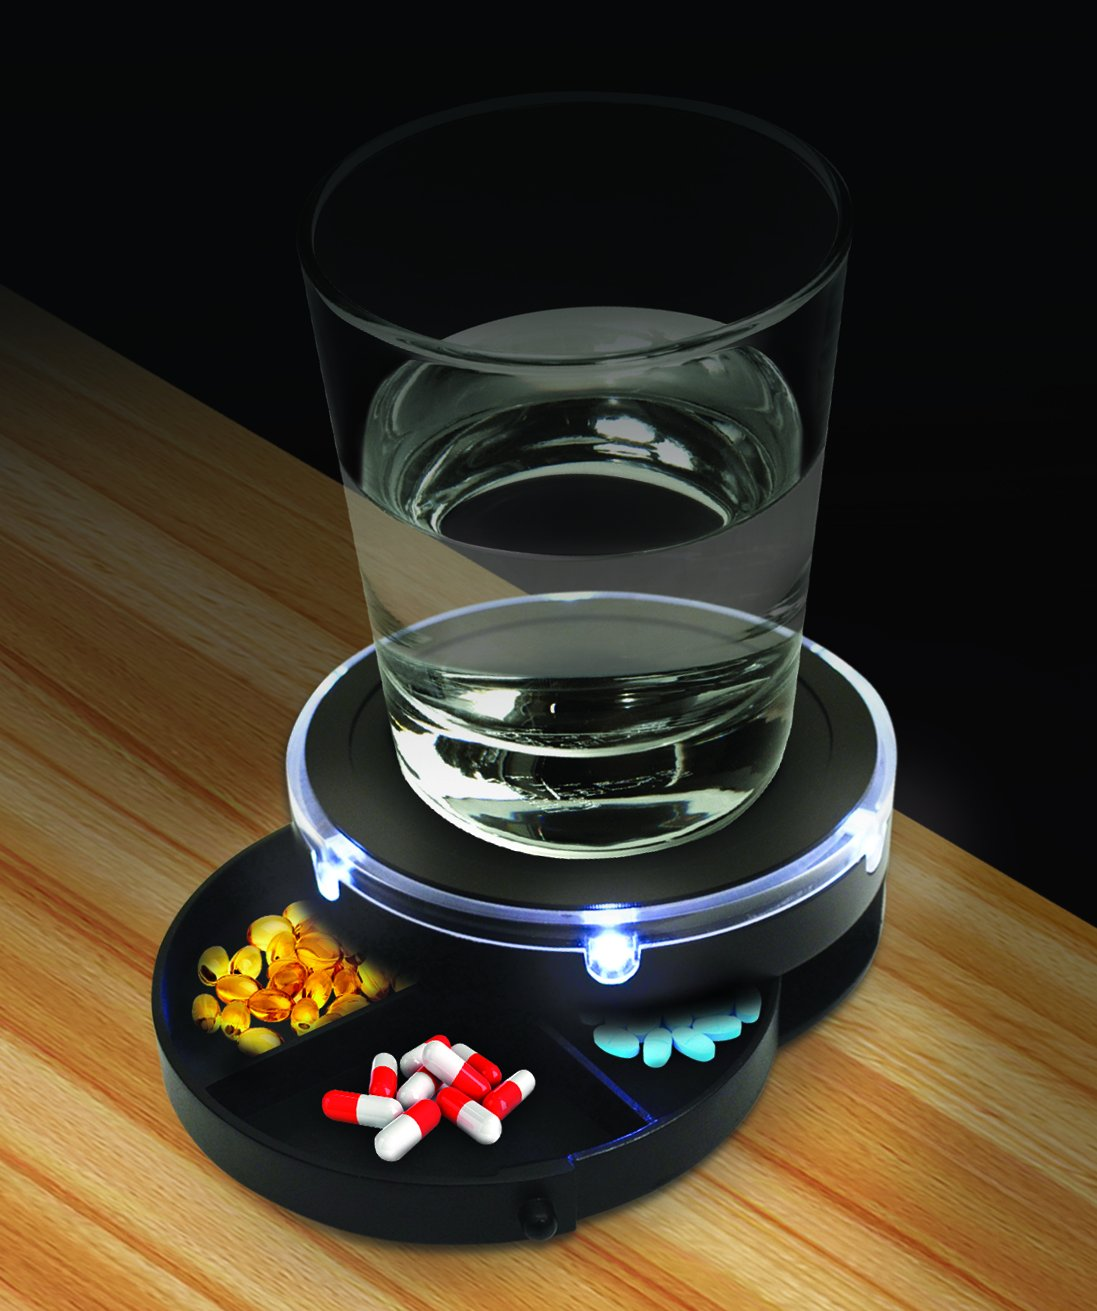 SOUND ACTIVATED LED LIGHTED NIGHTSTAND CADDY WITH PILL CONTAINER